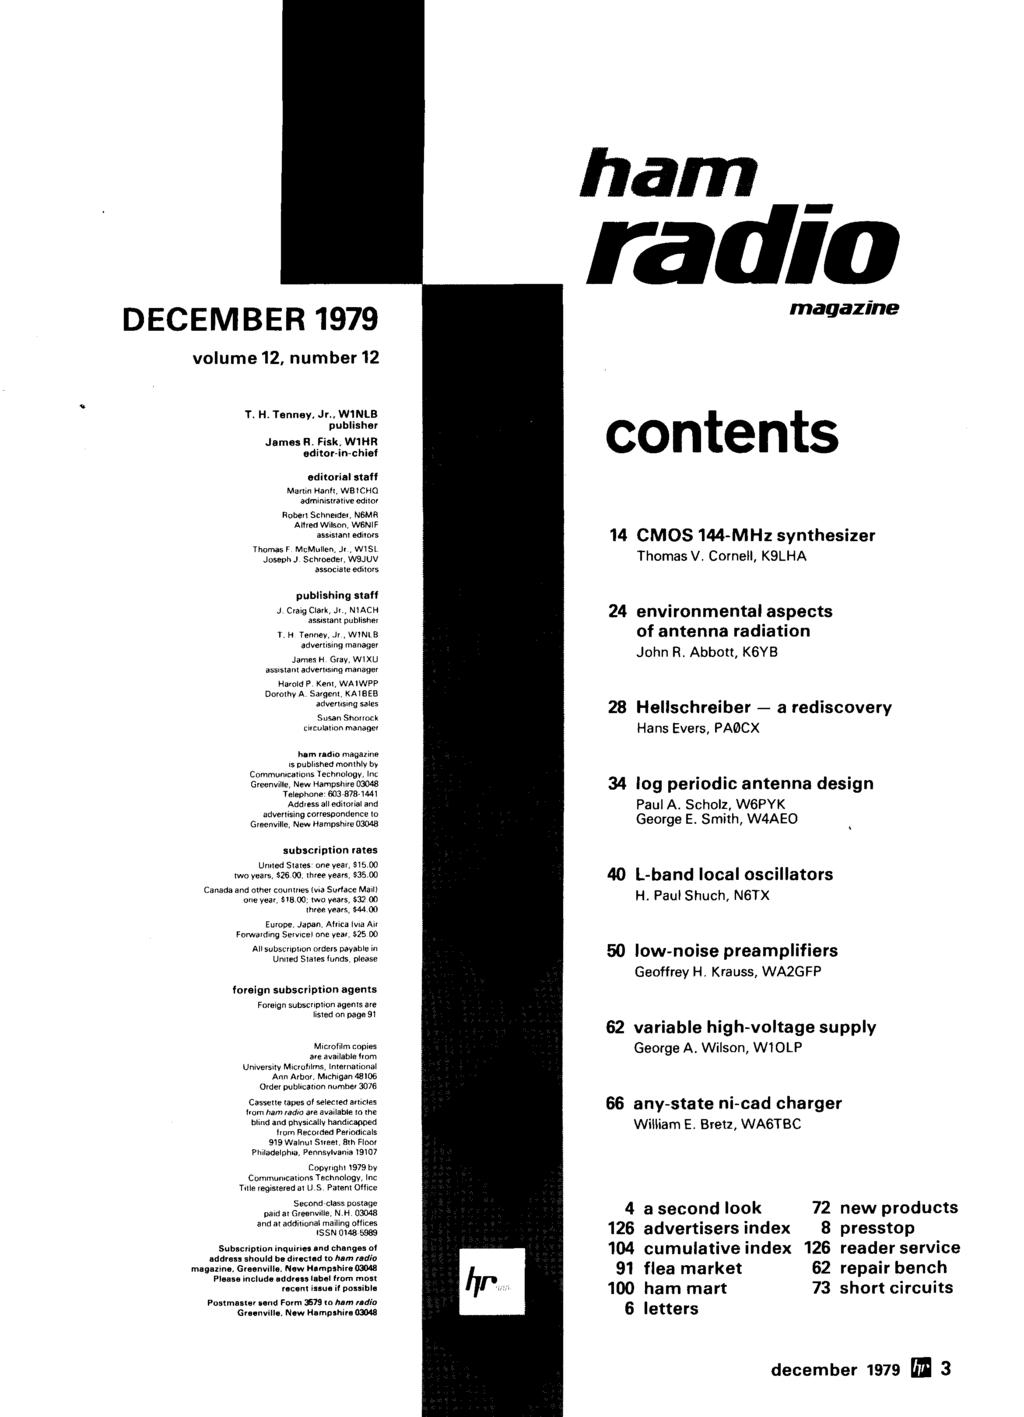 magazine contents 14 CMOS 144-MHz synthesizer Thomas V. Cornell, K9LHA 24 environmental aspects of antenna radiation John R.